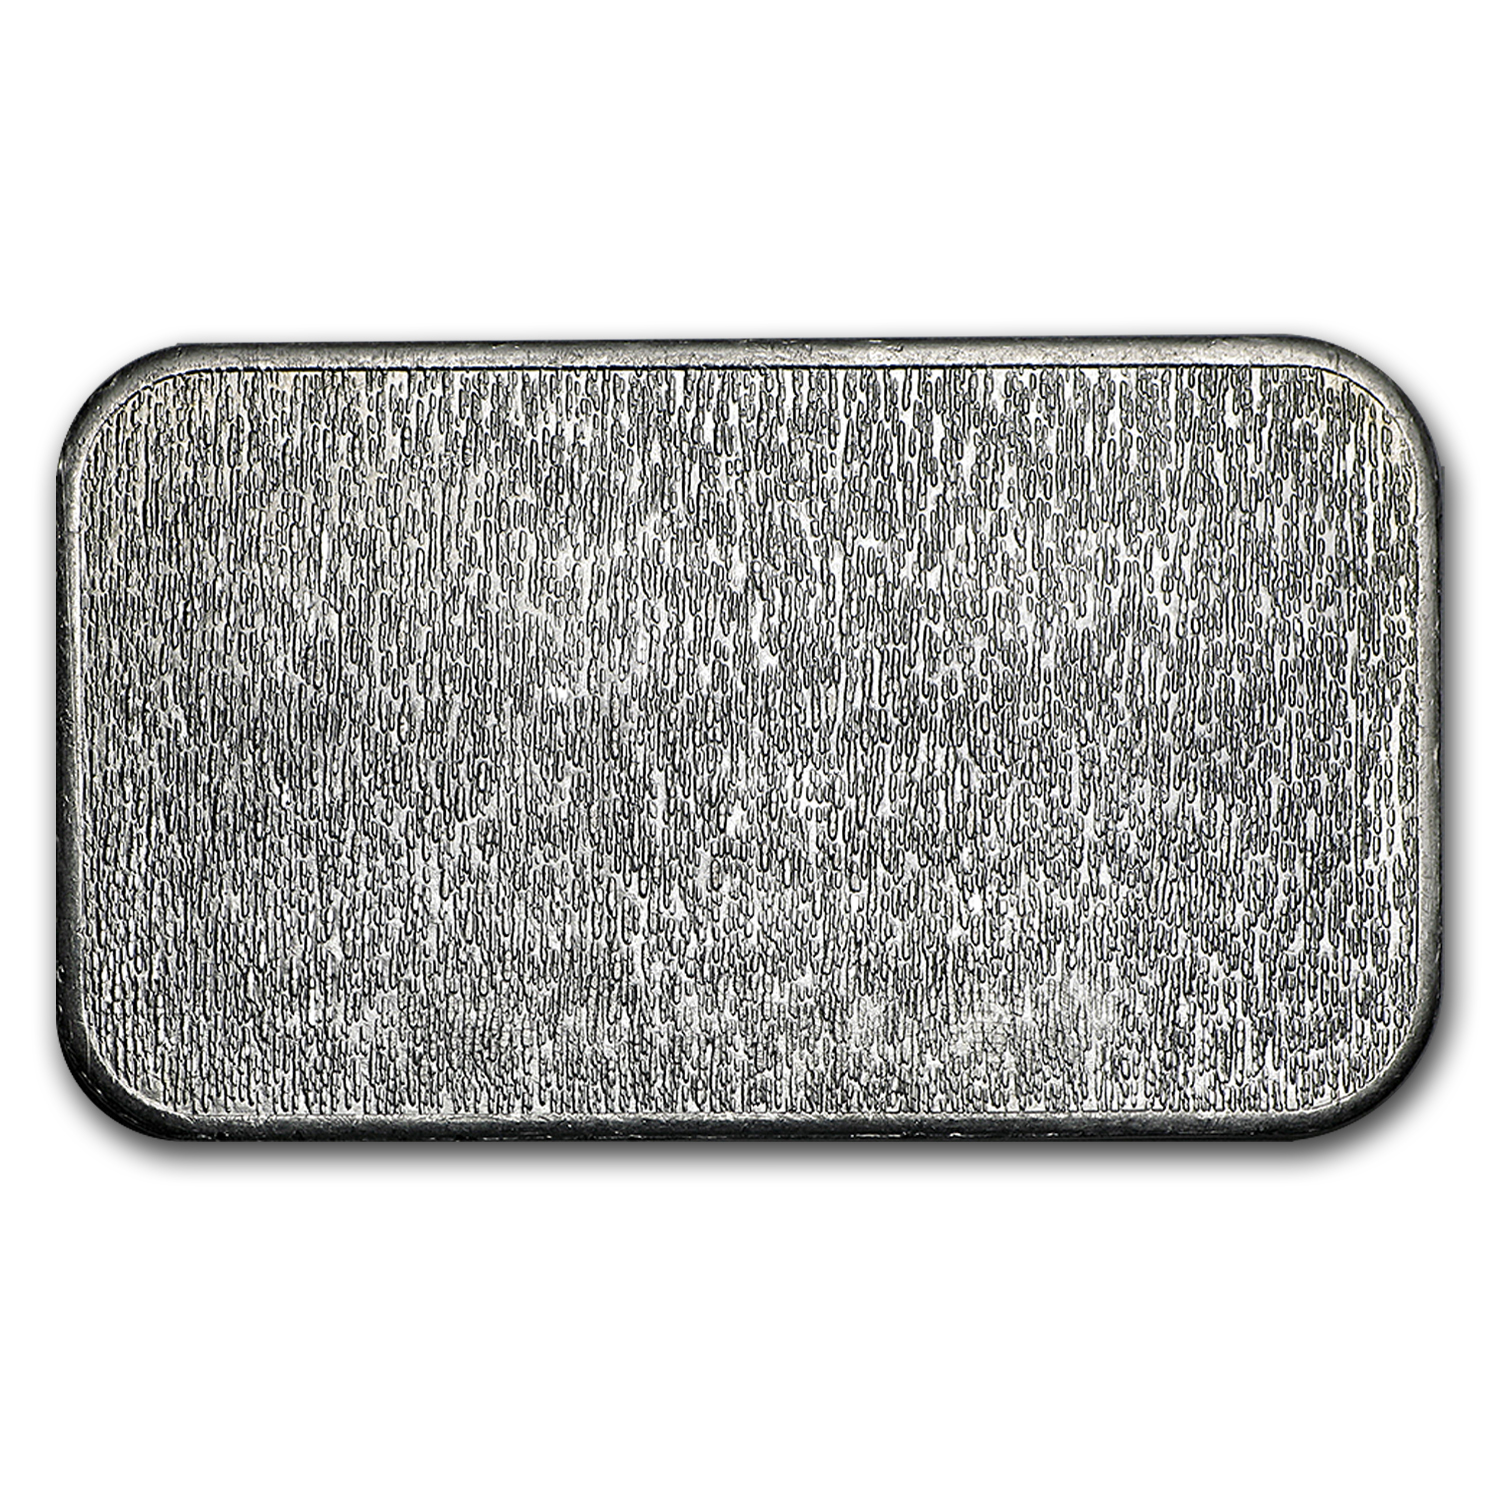 1 oz Silver Bars - Engelhard (Wide/Logo/Frosted/1980/6-digit)